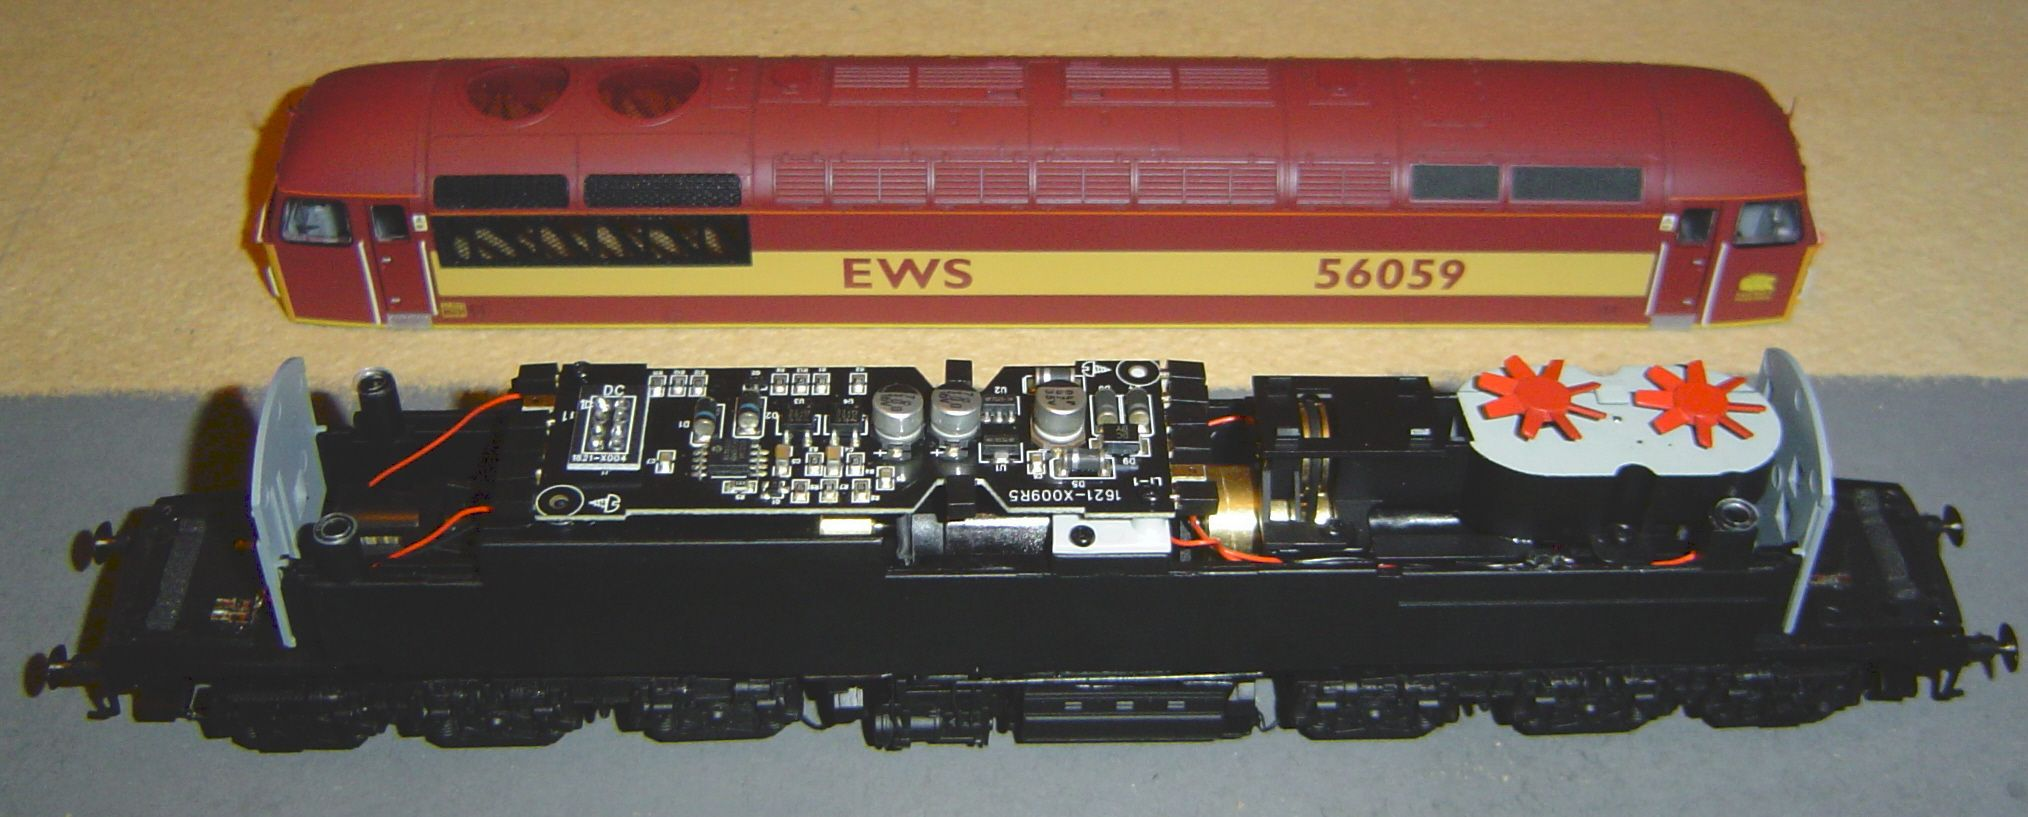 hornby model train computer - photo #37